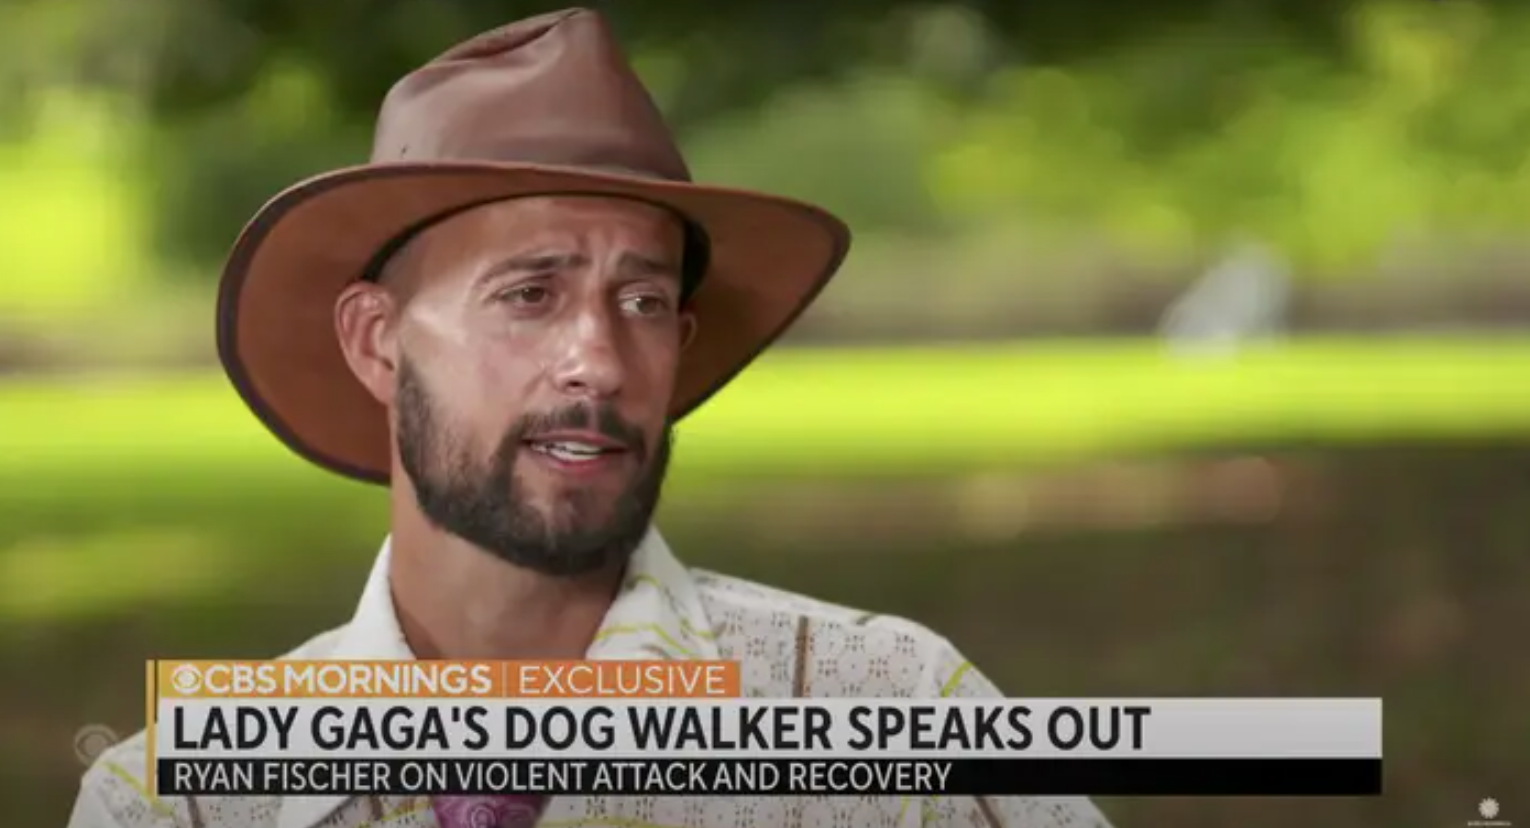 Still from an interview with Ryan Fischer with a chyron: Lady Gaga's Dog Walker Speaks Out